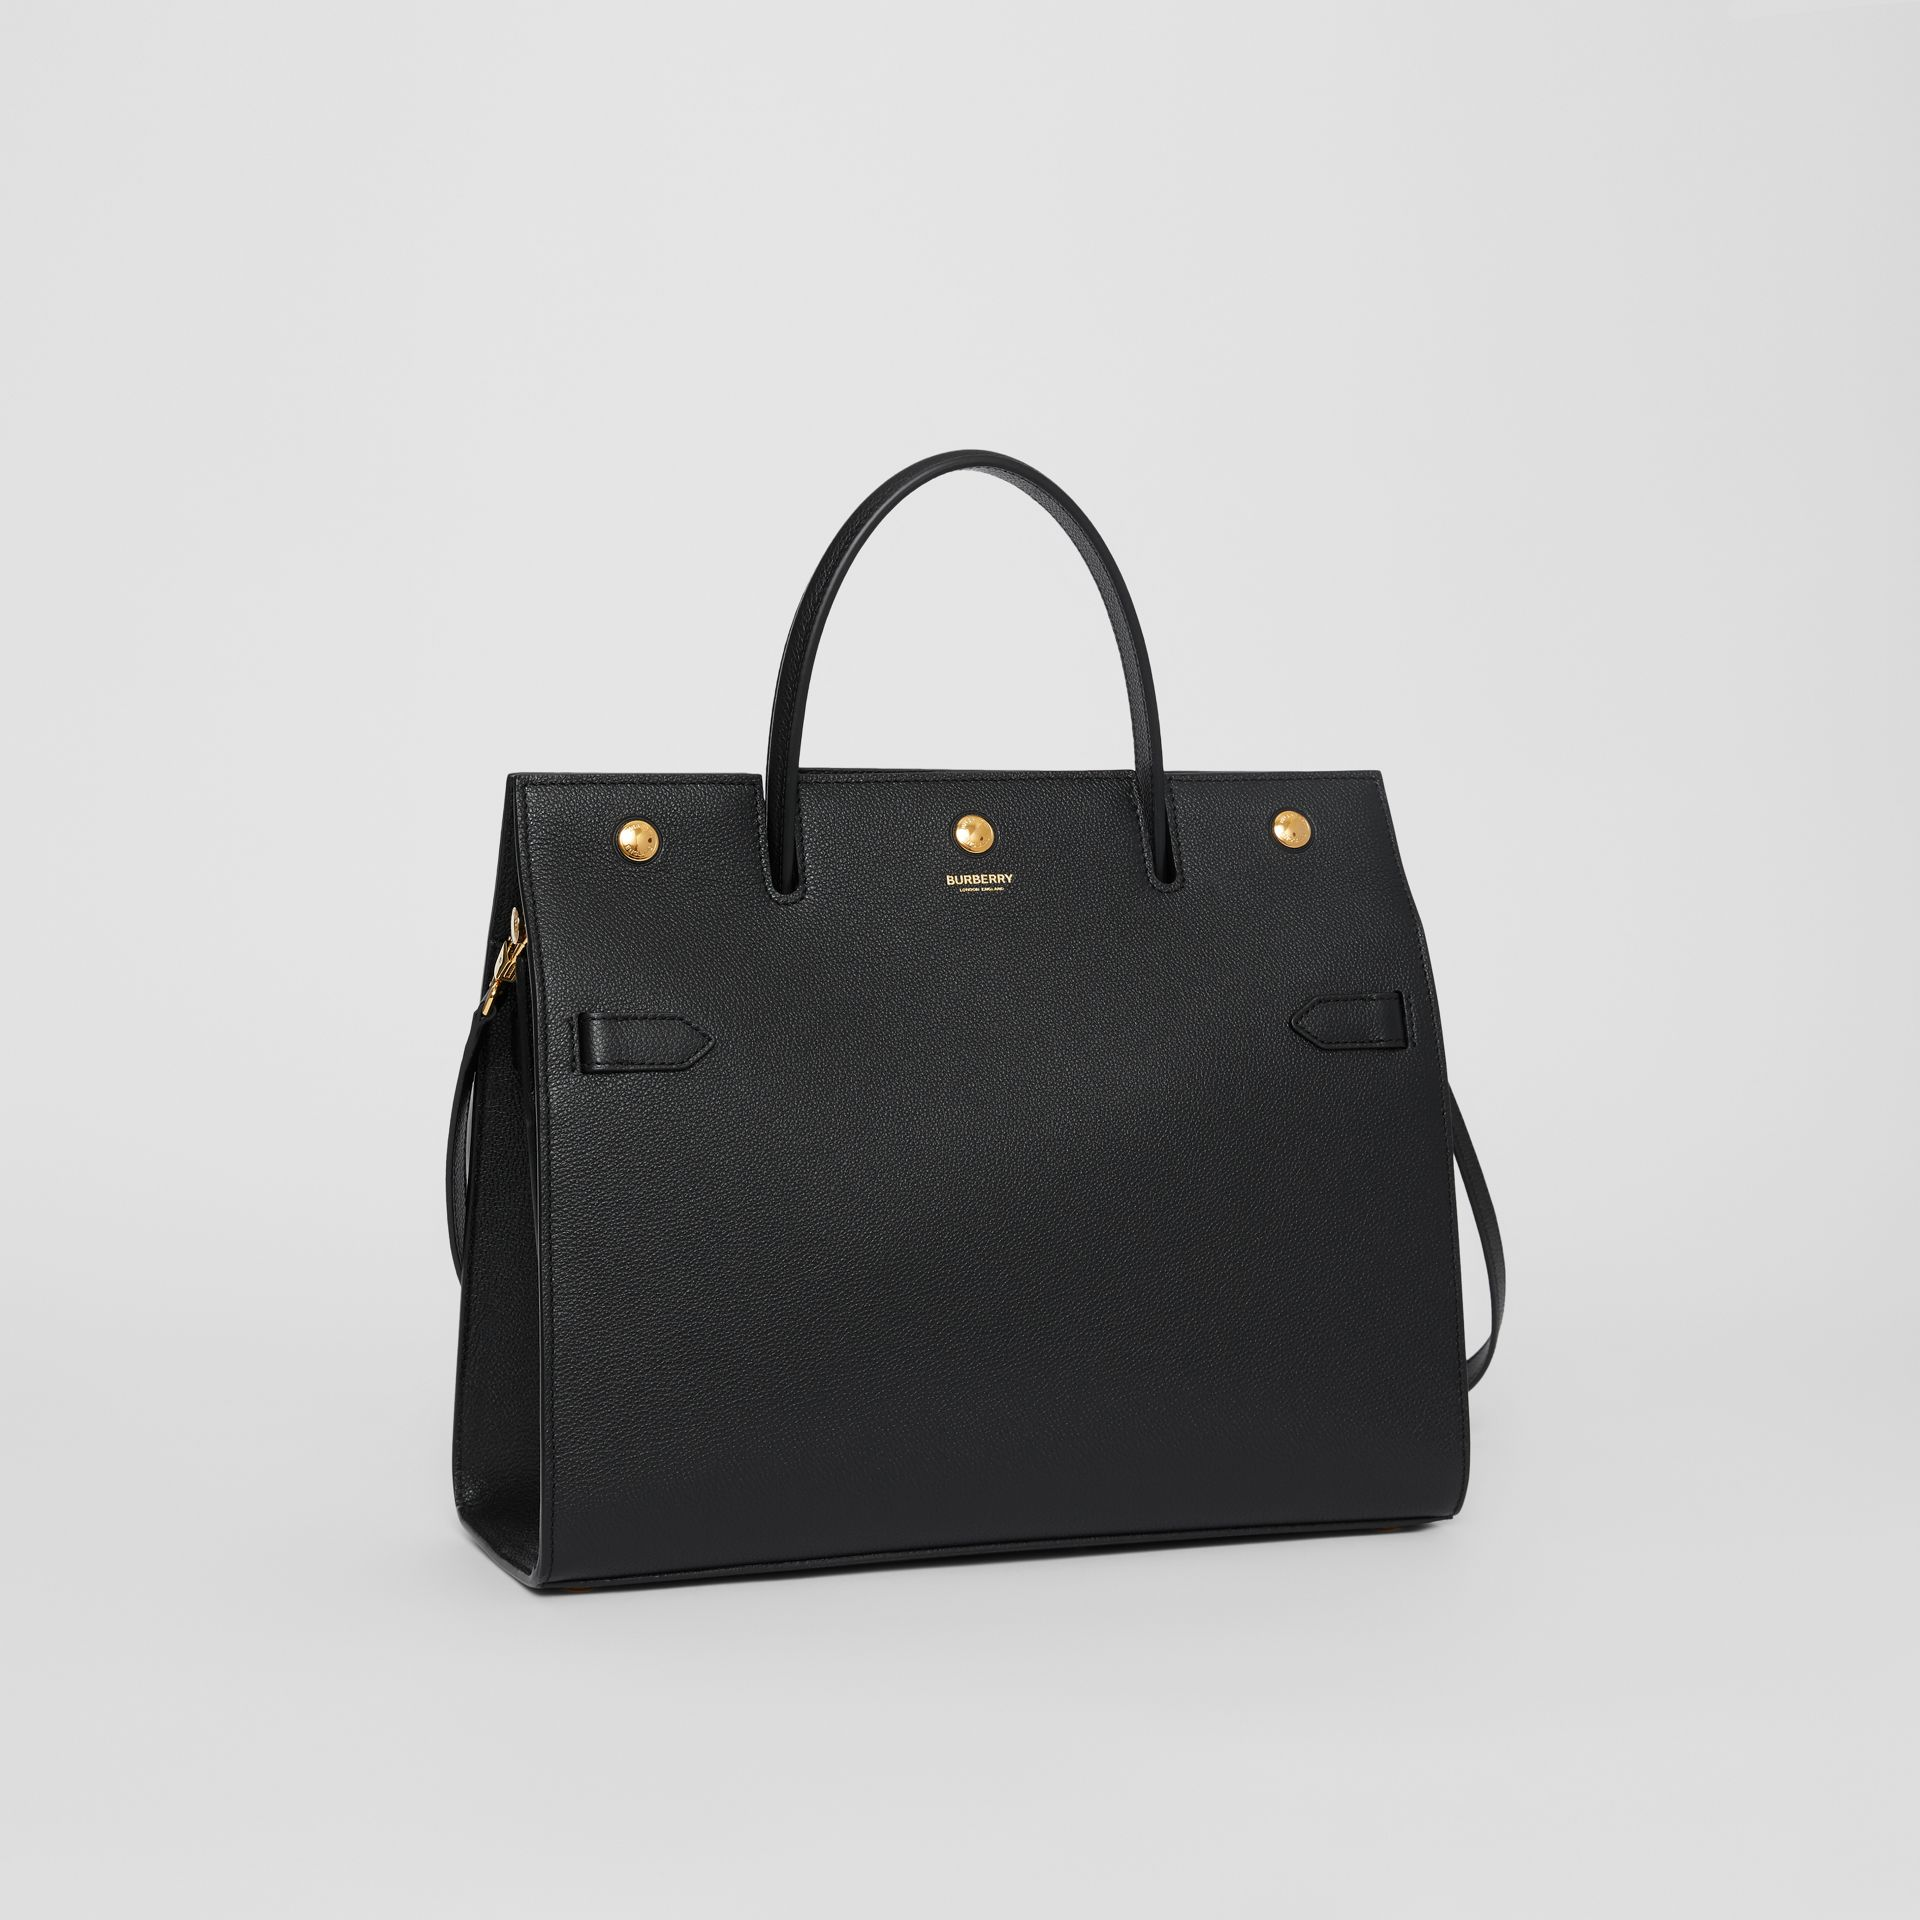 Medium Leather Title Bag in Black - Women | Burberry Singapore - gallery image 6